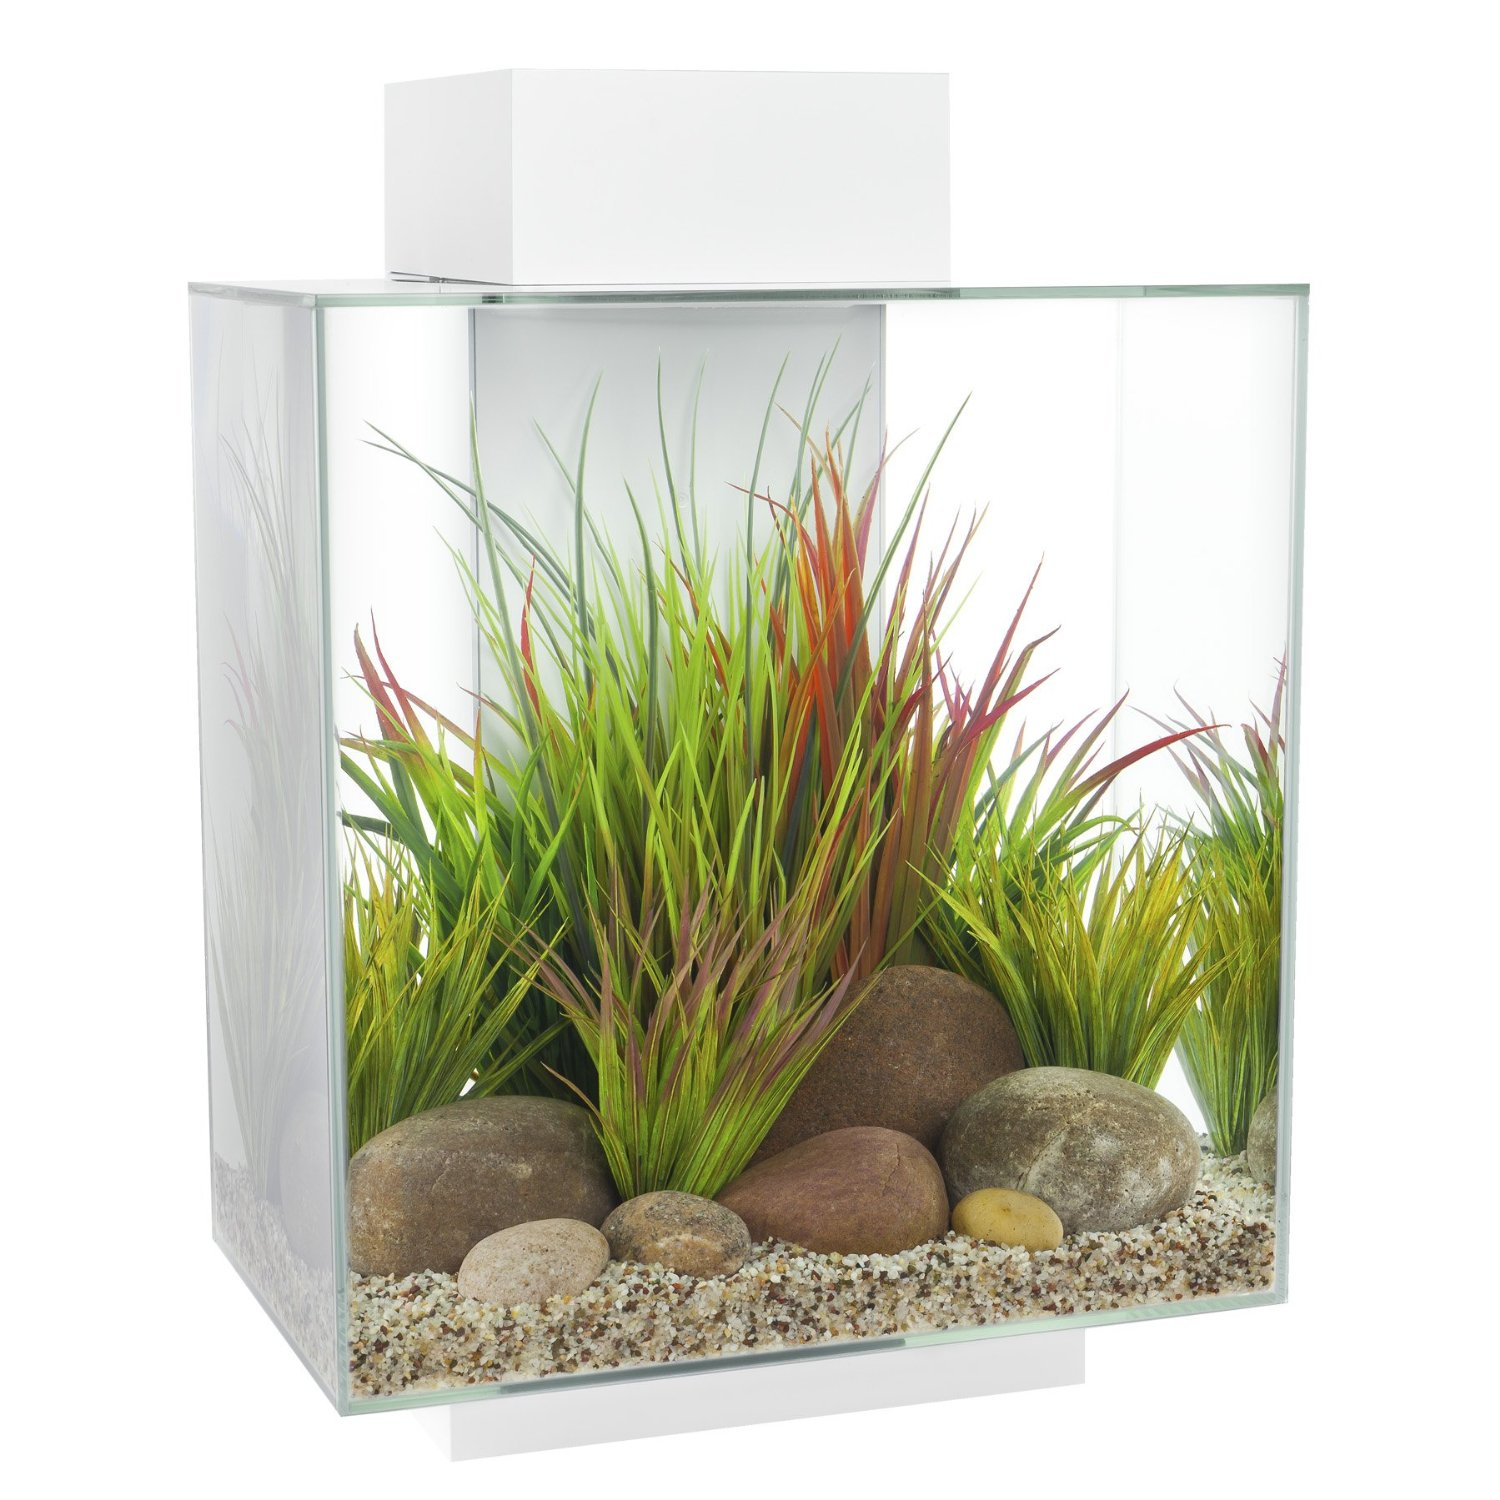 Nano aquarium nano aquaristik nanoaquarium kaufen shop for Acquari on line shop